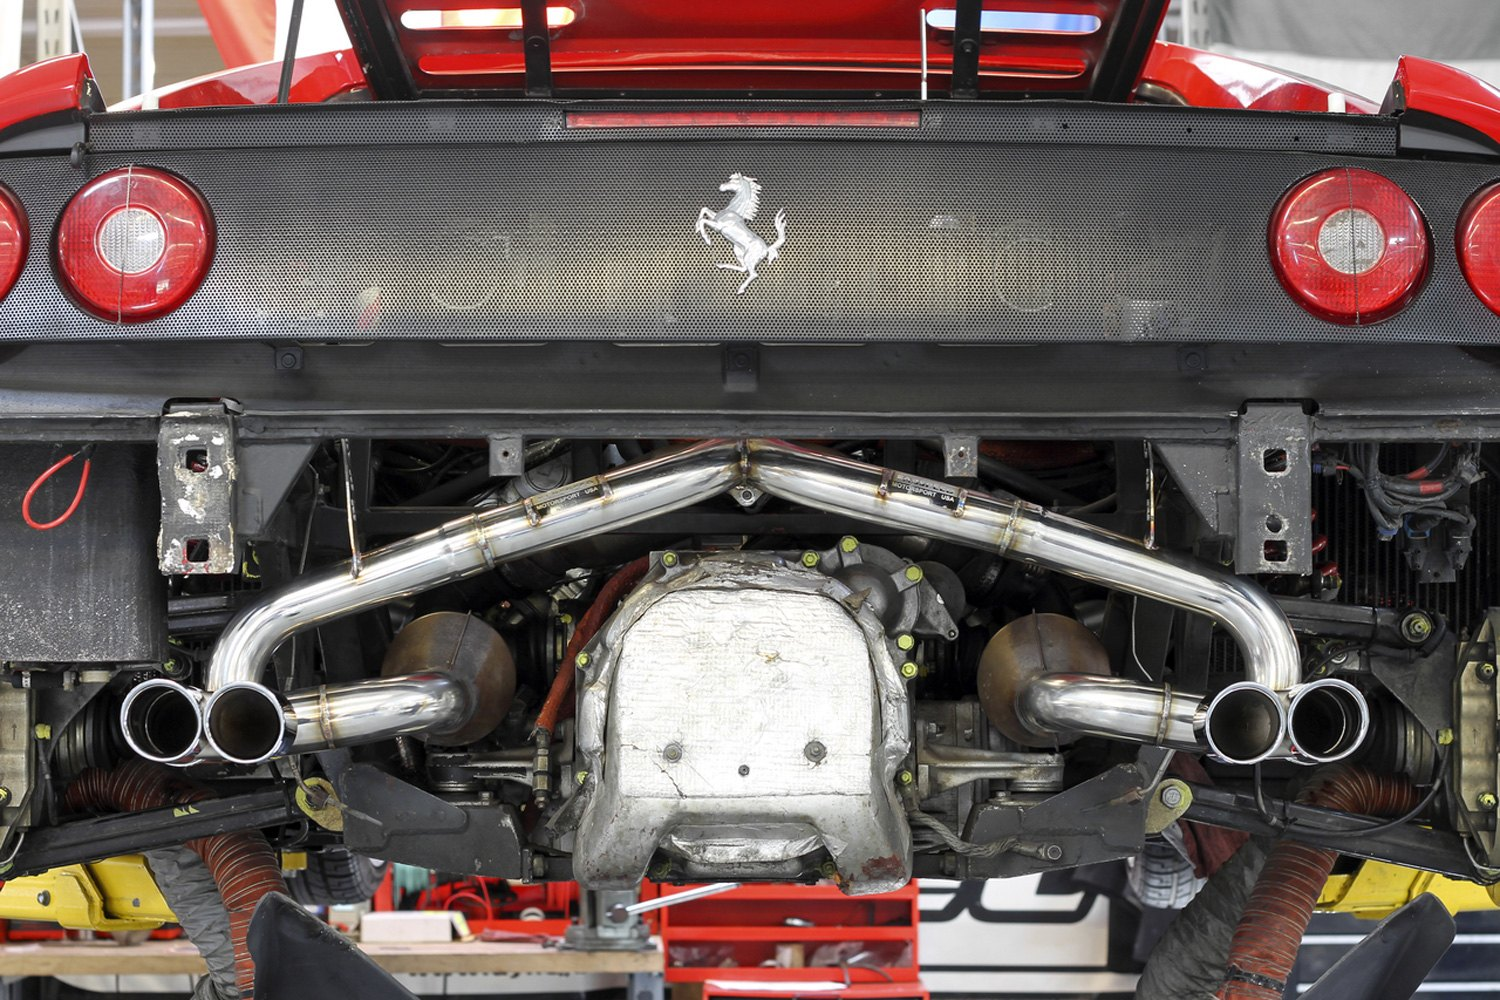 Fabspeed Ferrari F355 1997 Race Exhaust System With Quad Rear Exit